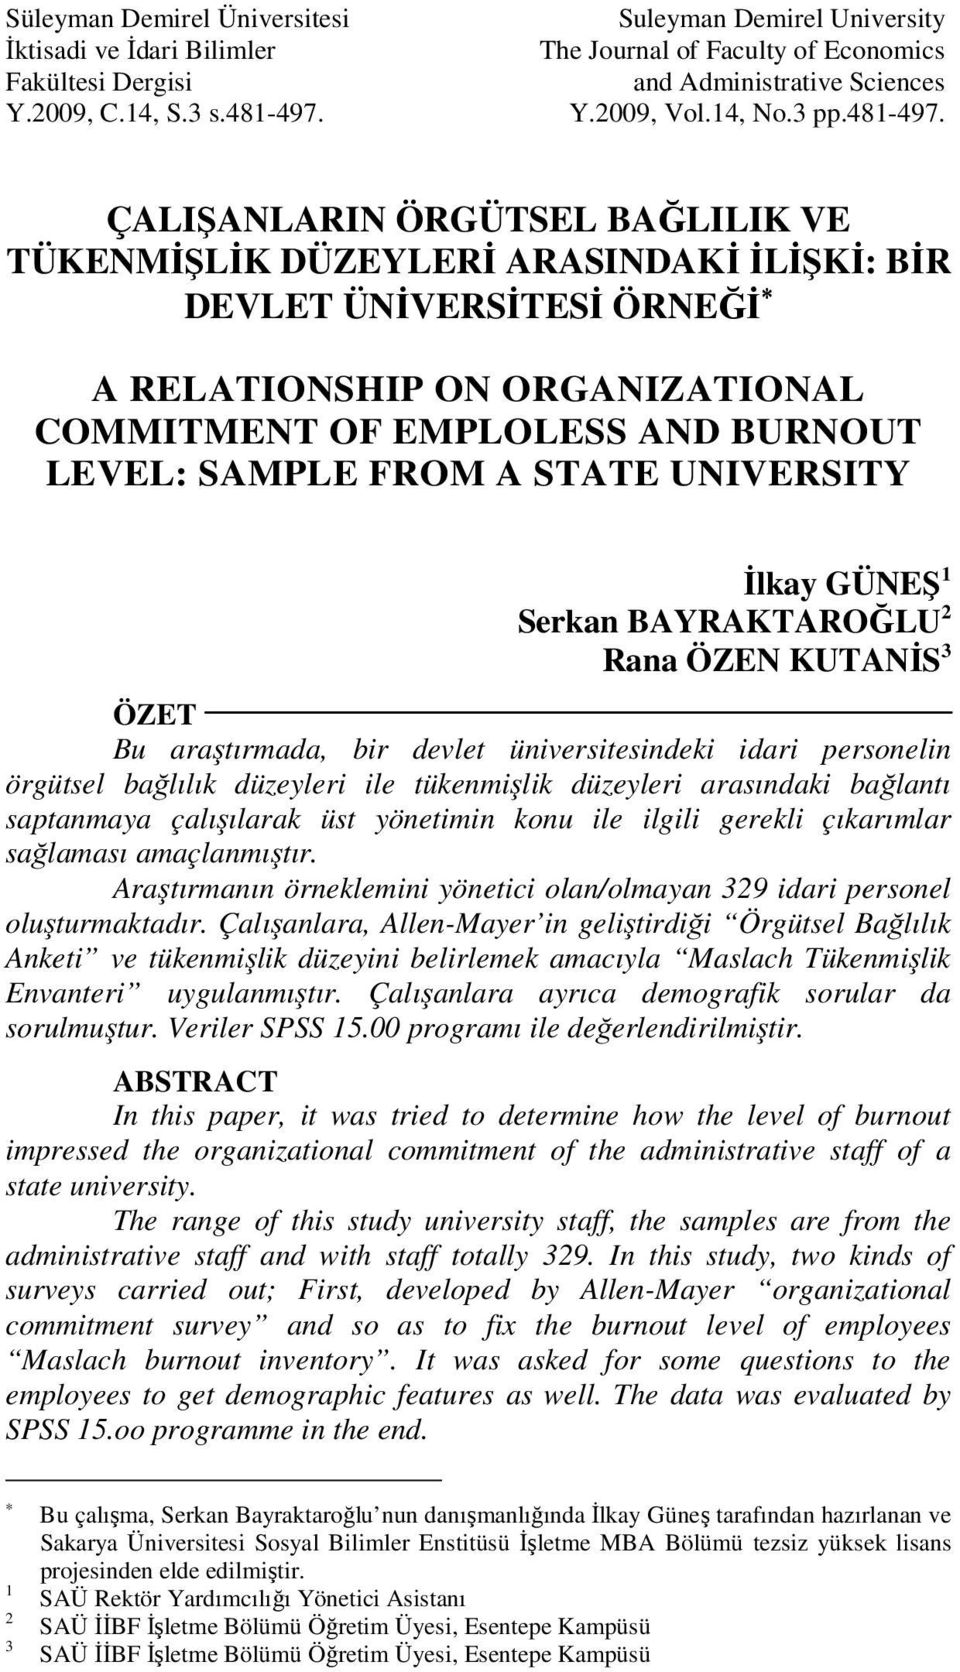 ÇALIŞANLARIN ÖRGÜTSEL BAĞLILIK VE TÜKENMİŞLİK DÜZEYLERİ ARASINDAKİ İLİŞKİ: BİR DEVLET ÜNİVERSİTESİ ÖRNEĞİ A RELATIONSHIP ON ORGANIZATIONAL COMMITMENT OF EMPLOLESS AND BURNOUT LEVEL: SAMPLE FROM A